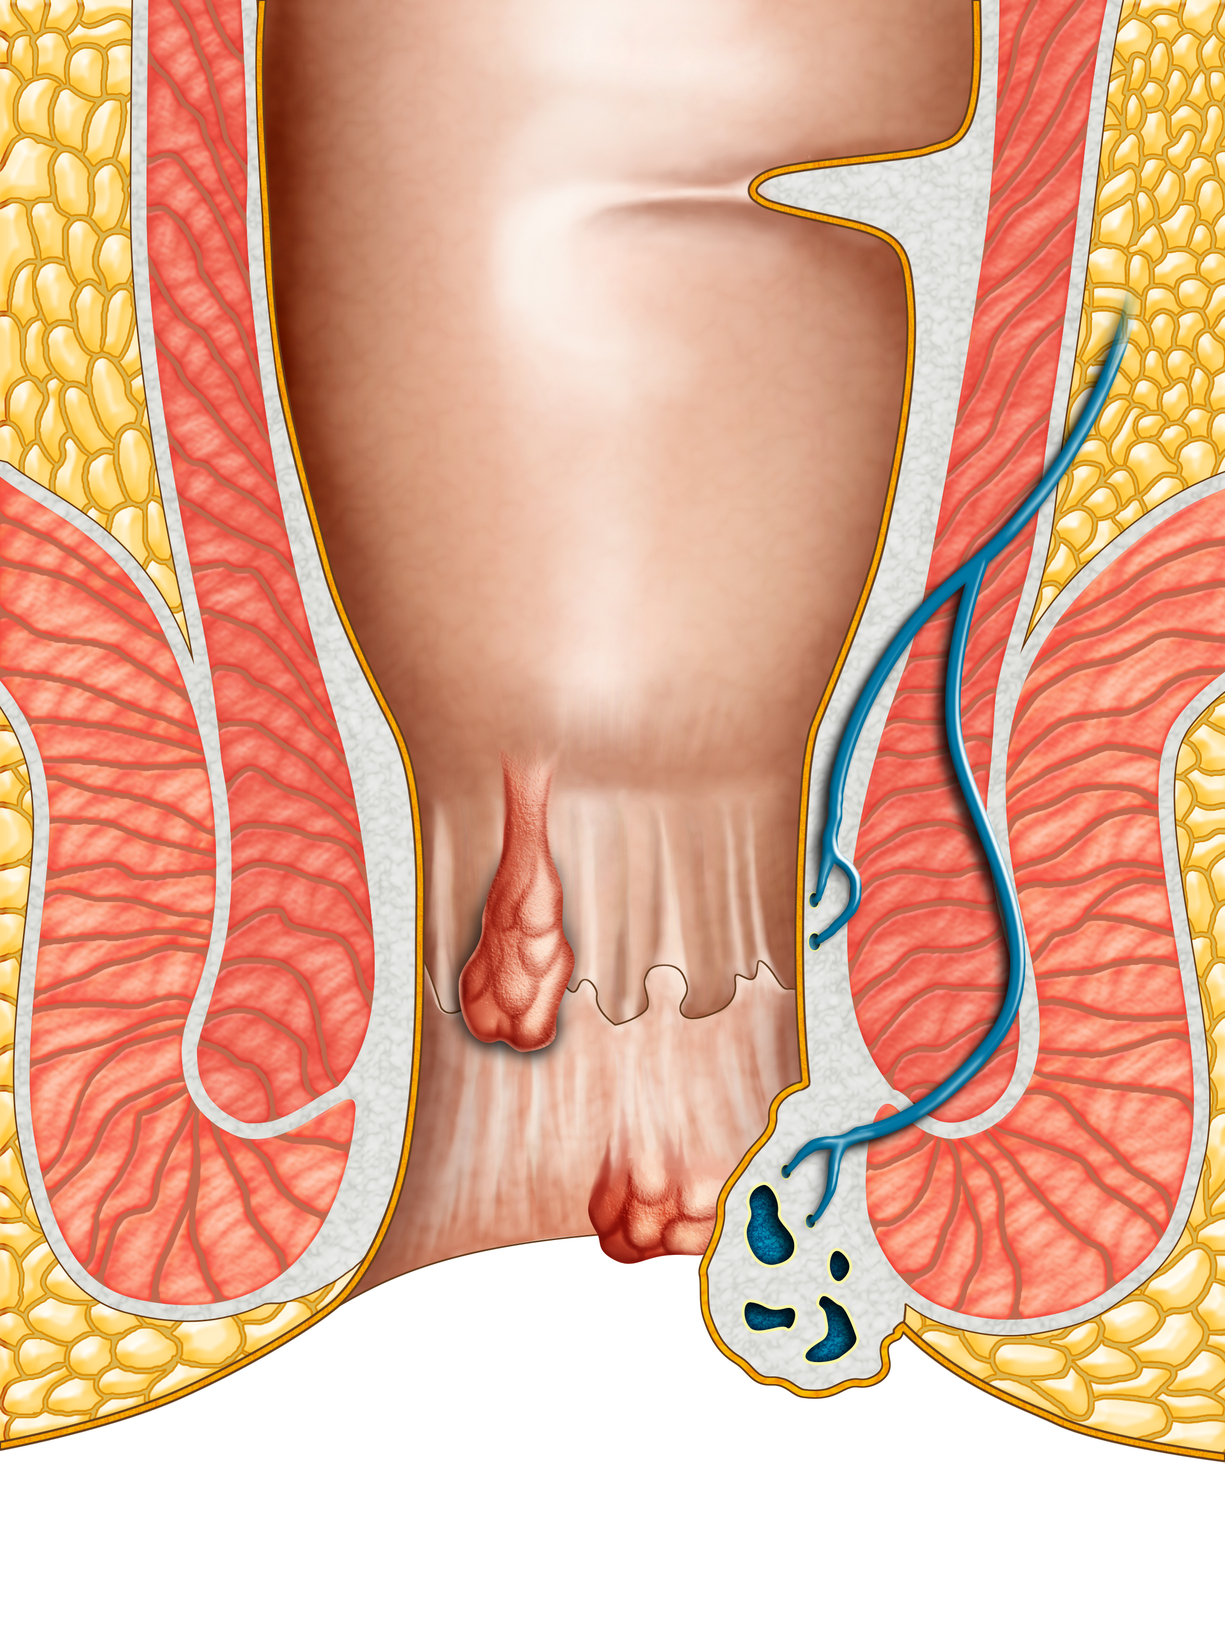 hernias on the outside of anal of a male